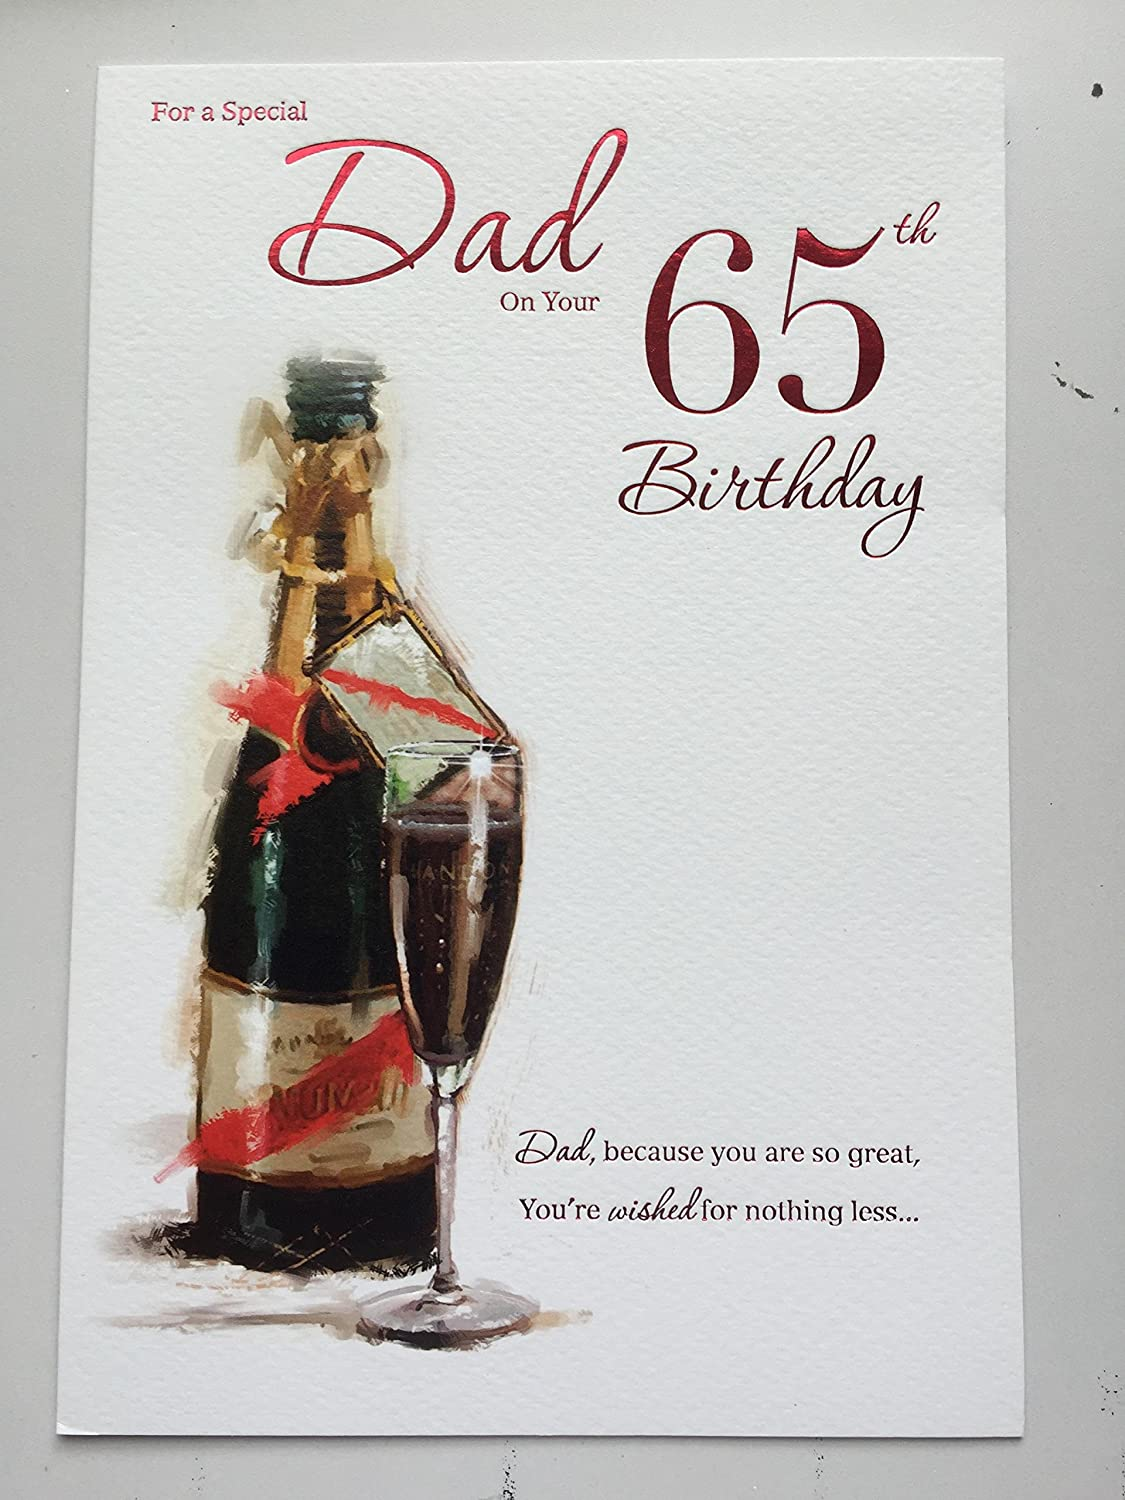 Download 65th birthday card turning 65 happy 65th birthday friend - Download 65th Birthday Card Turning 65 Happy 65th Birthday Friend 14